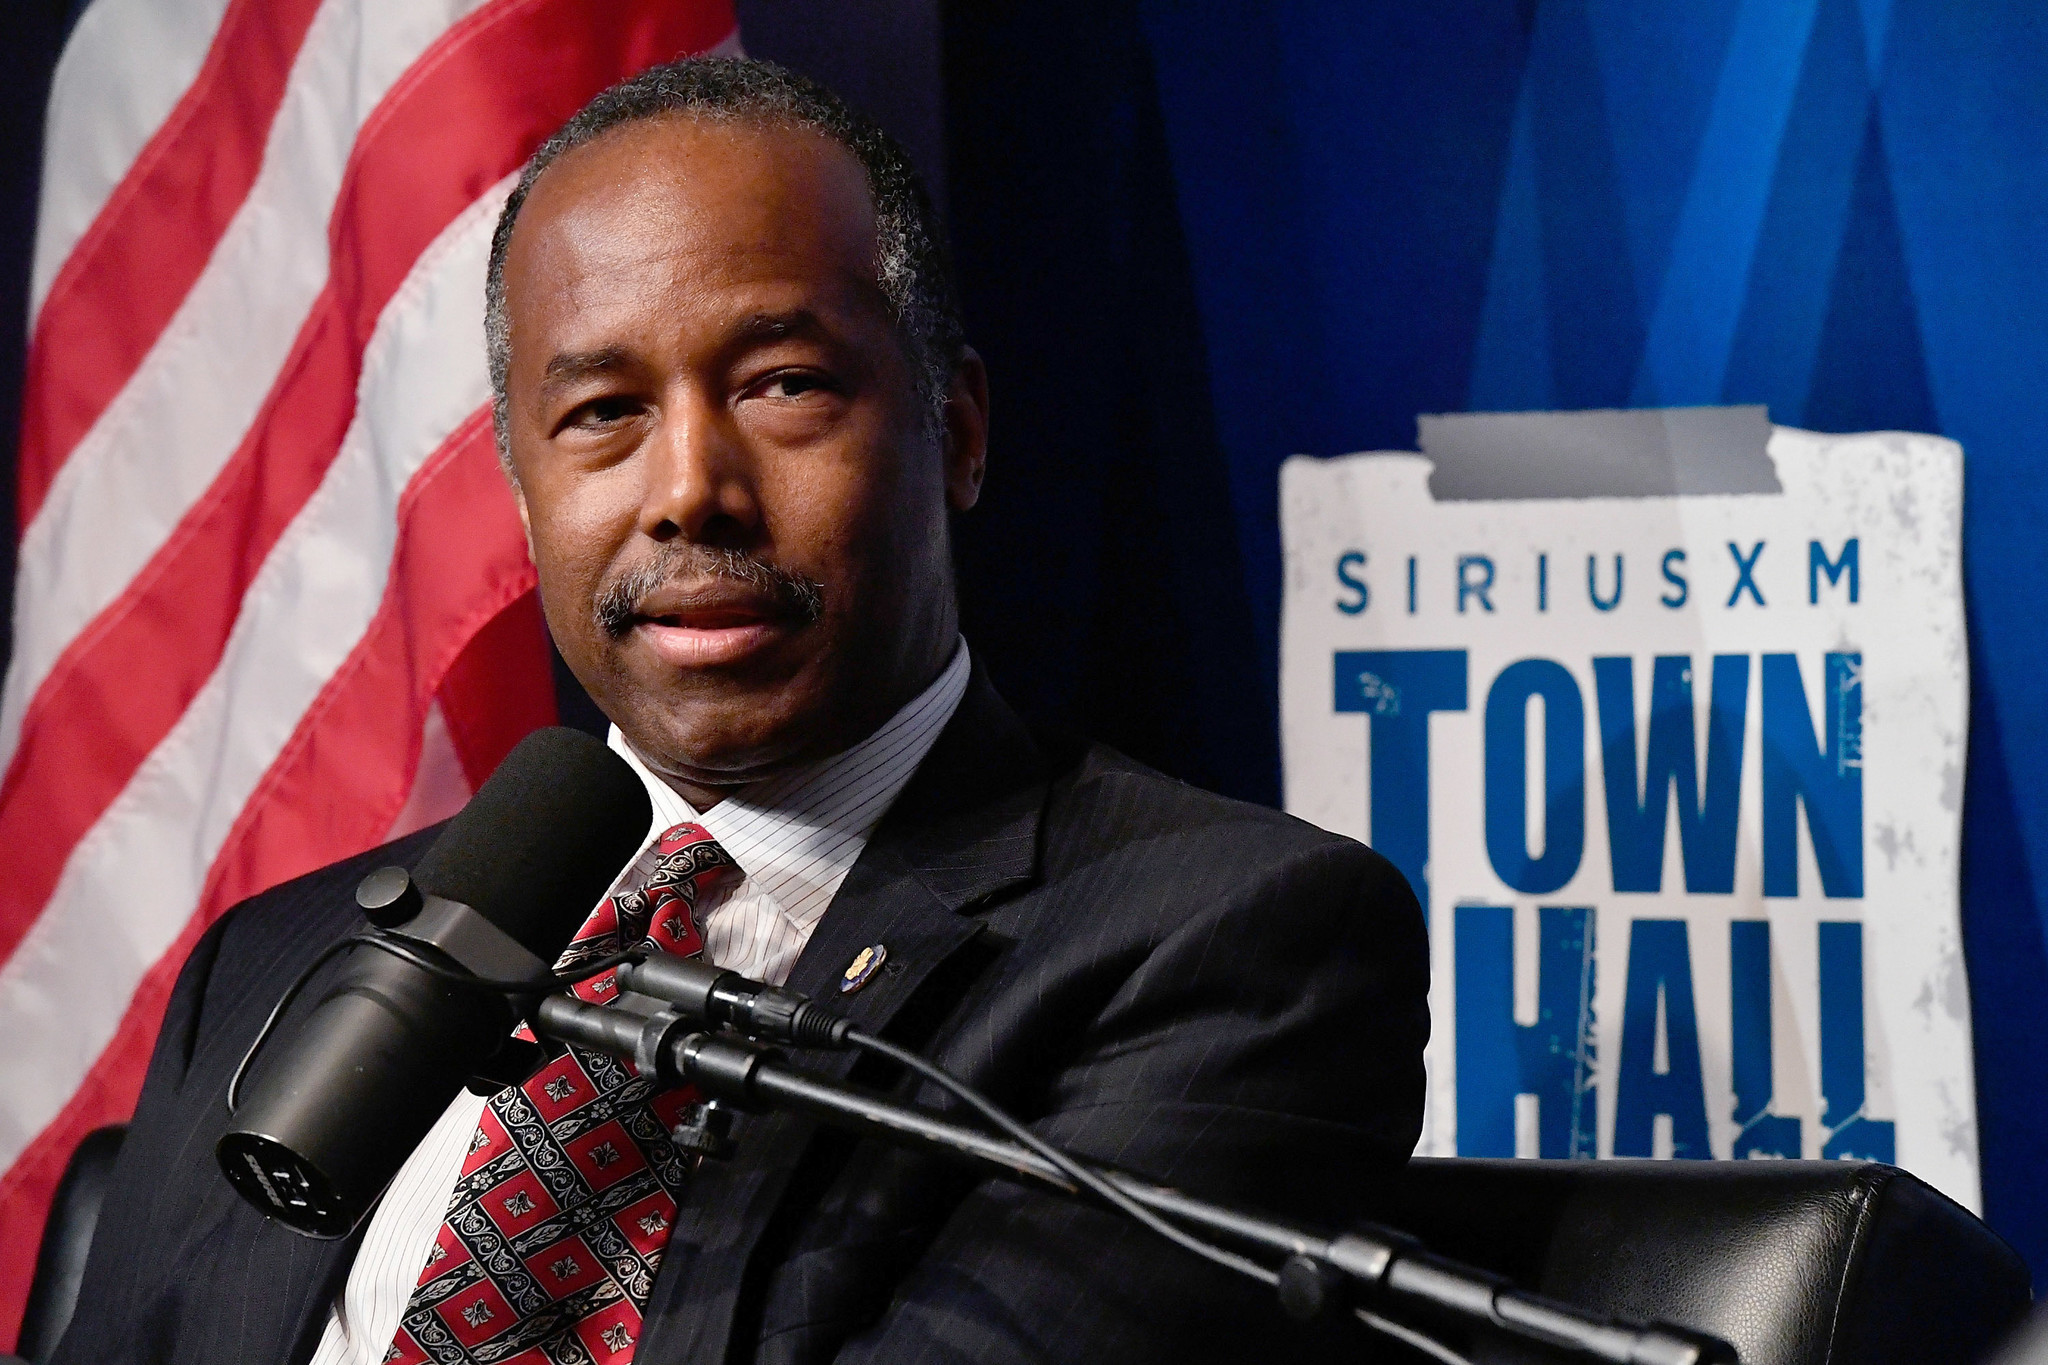 what sort of 'mindset' would cut hud programs that combat poverty